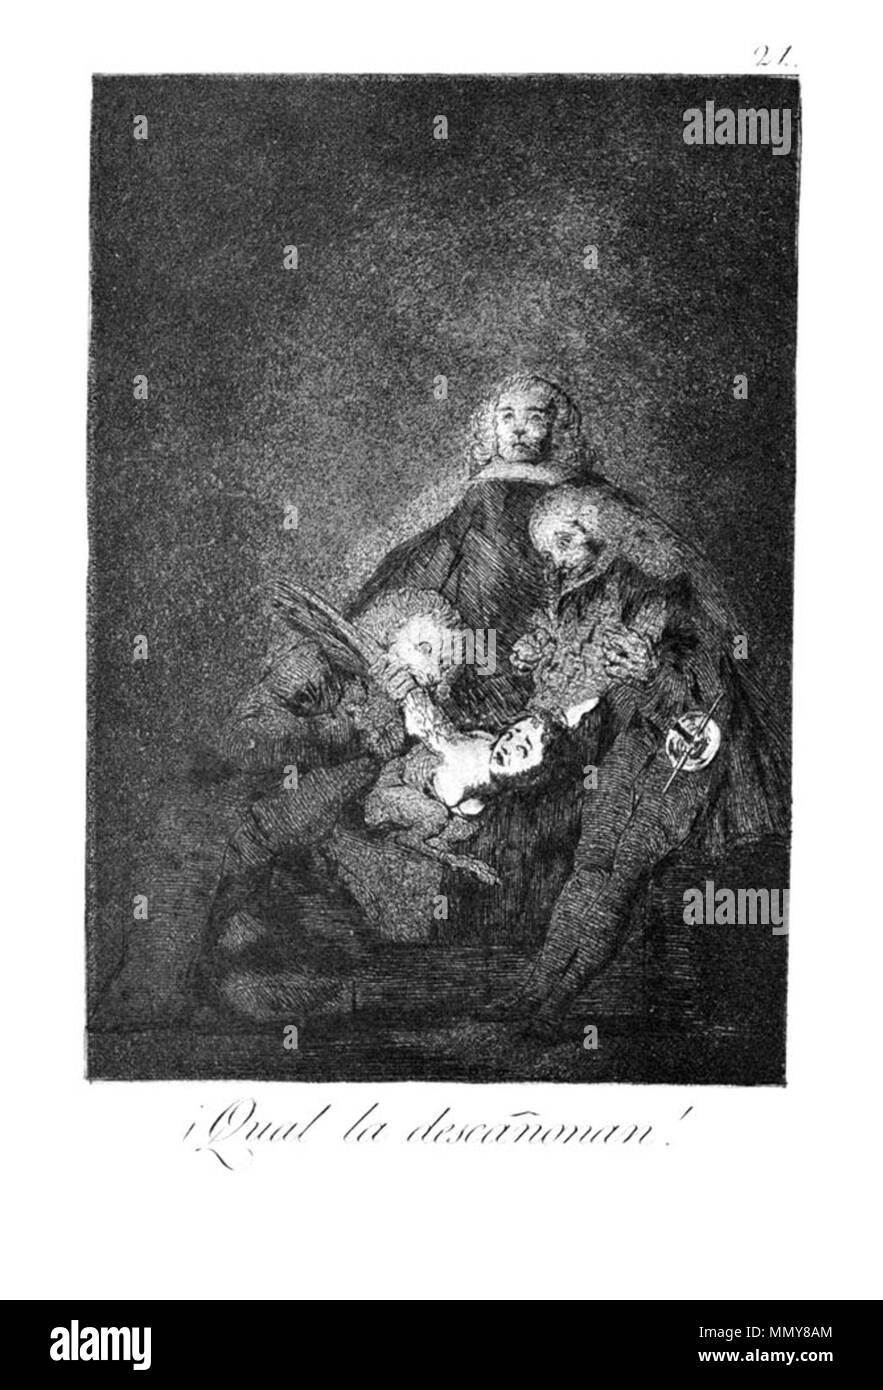 . Los Caprichos is a set of 80 aquatint prints created by Francisco Goya for release in 1799.  . 1799.   Francisco Goya (1746–1828)   Alternative names Francisco Goya Lucientes, Francisco de Goya y Lucientes, Francisco José Goya Lucientes  Description Spanish painter, printmaker, lithographer, engraver and etcher  Date of birth/death 30 March 1746 16 April 1828  Location of birth/death Fuendetodos Bordeaux  Work location Madrid, Zaragoza, Bordeaux  Authority control  : Q5432 VIAF:?54343141 ISNI:?0000 0001 2280 1608 ULAN:?500118936 LCCN:?n79003363 NLA:?36545788 WorldCat Goya - Caprichos (21 - Stock Image